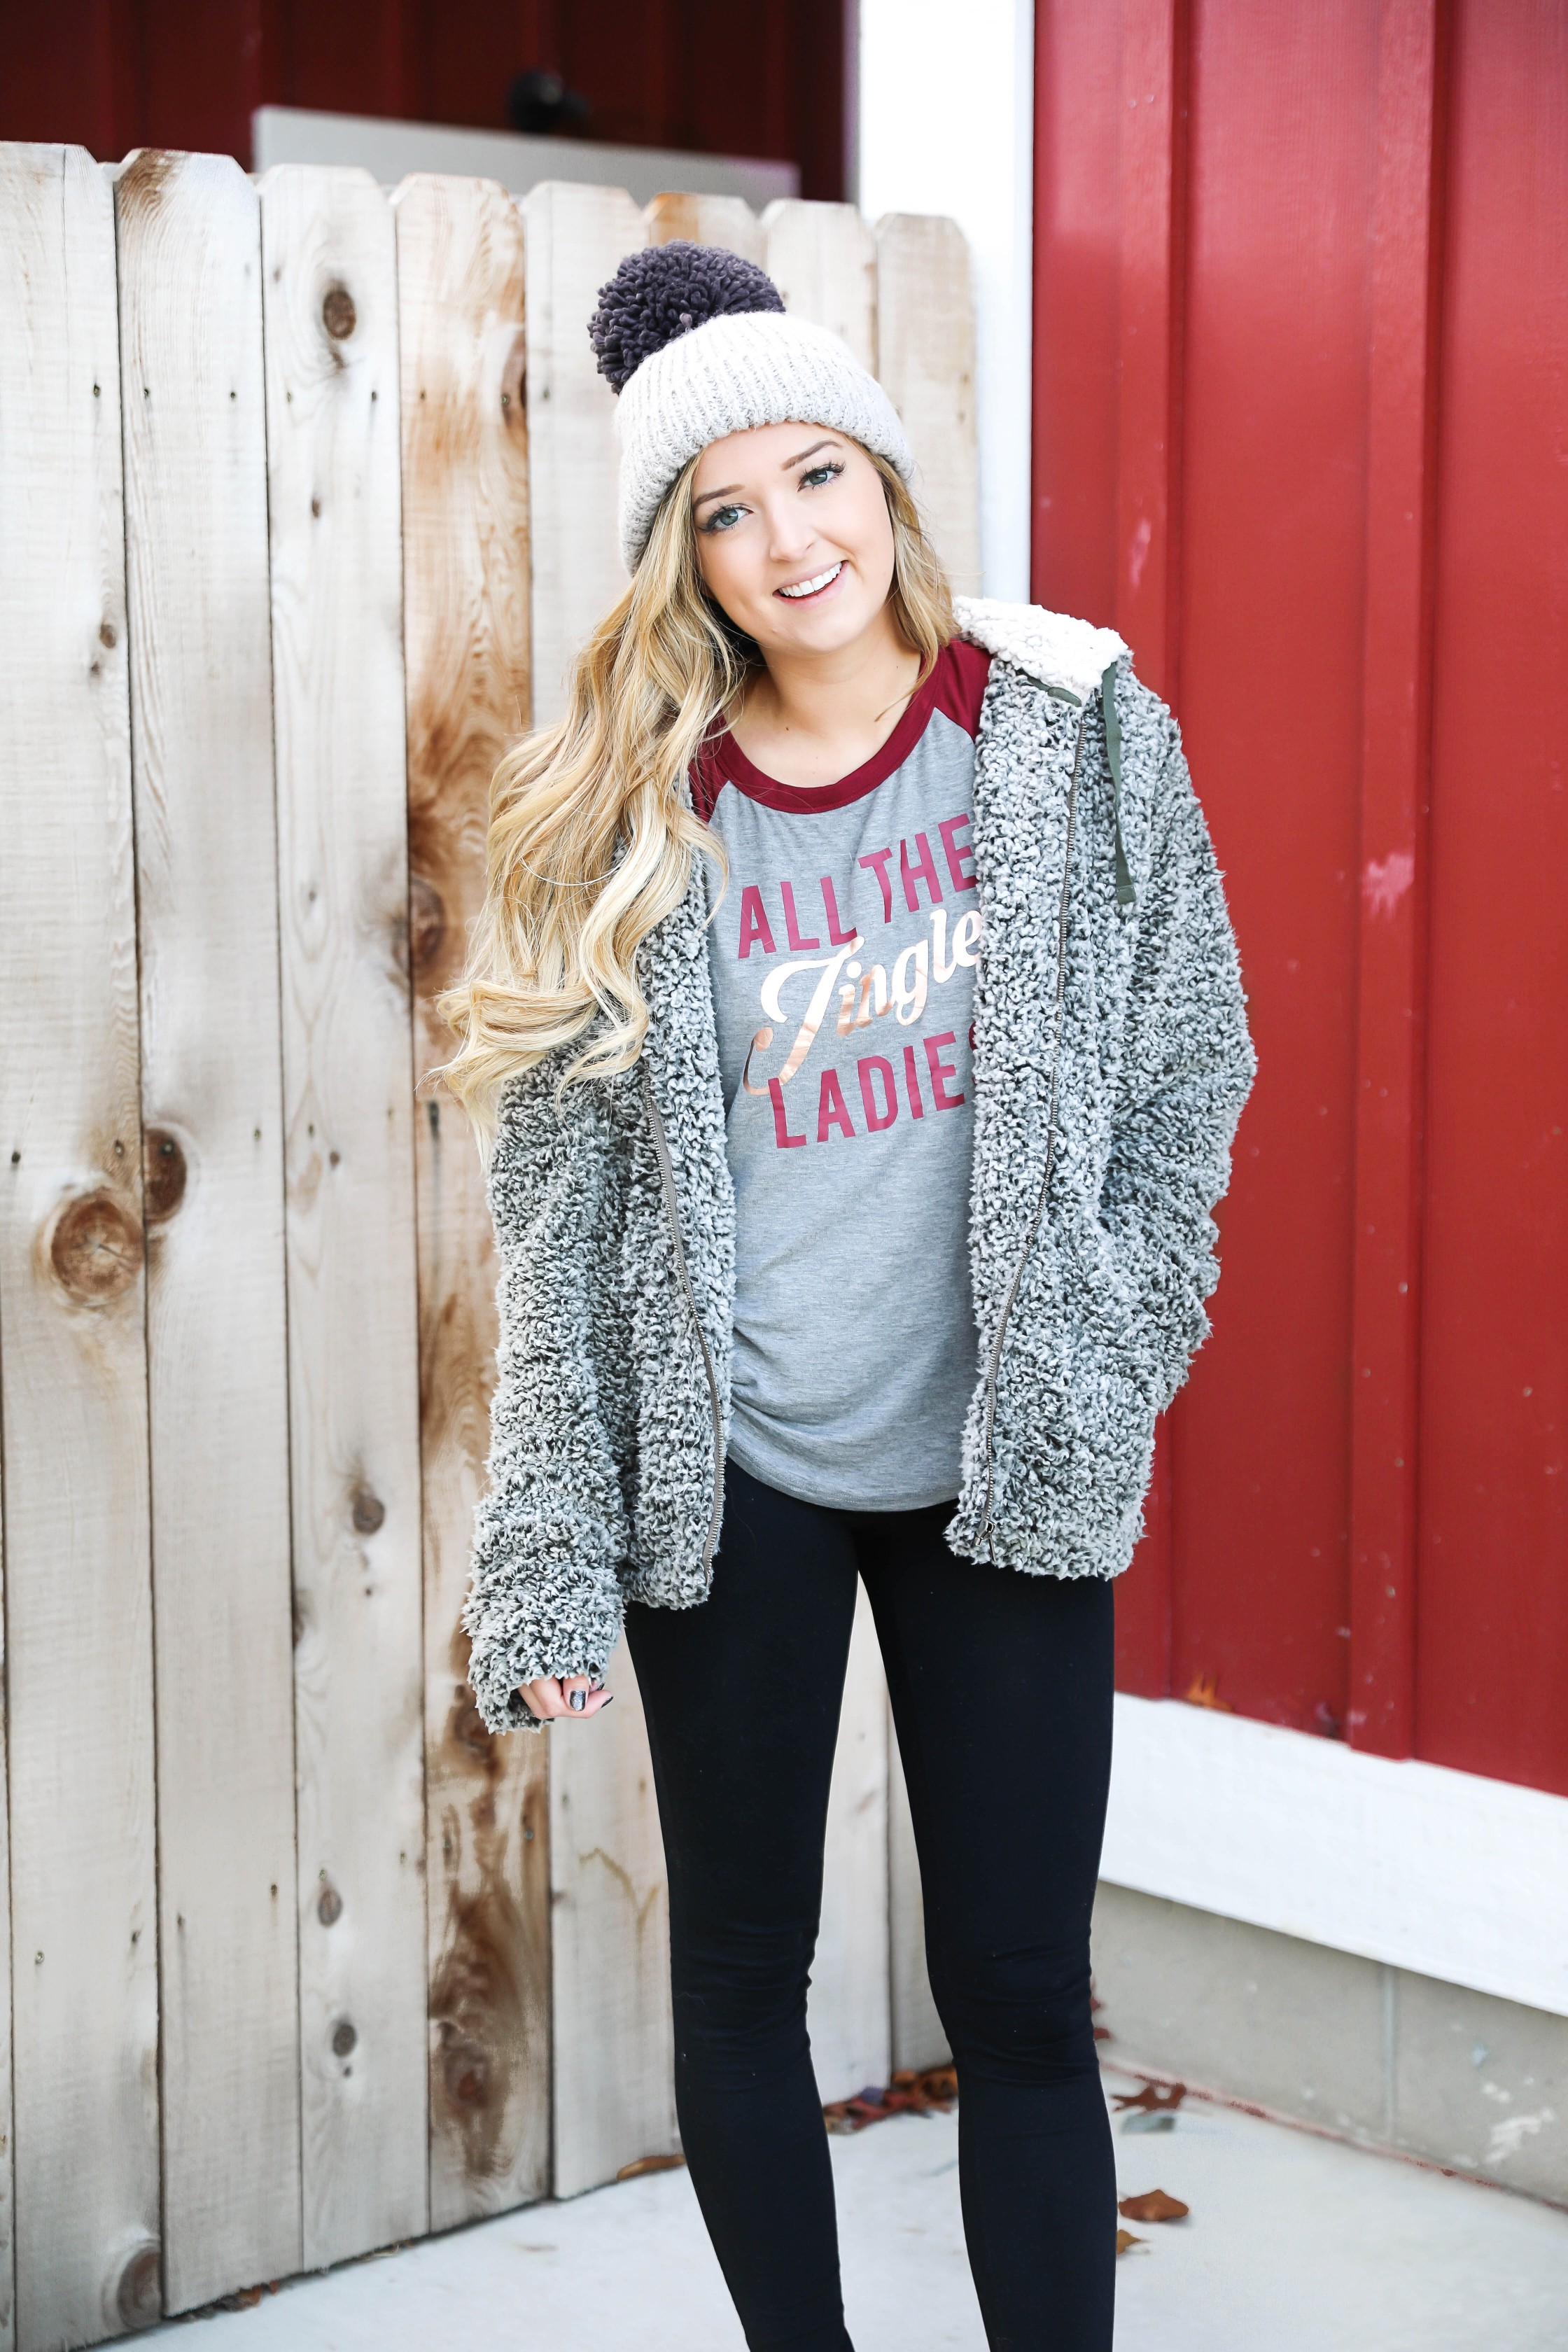 The softest sherpa zip up jacket! This Jacket is so comfortable and adorable for the holidays! I wore it with this cute grey beanie and all the jingle ladies shirt! Cute idea for a comfy winter outfit! Details on fashion blog daily dose of charm by lauren lindmark